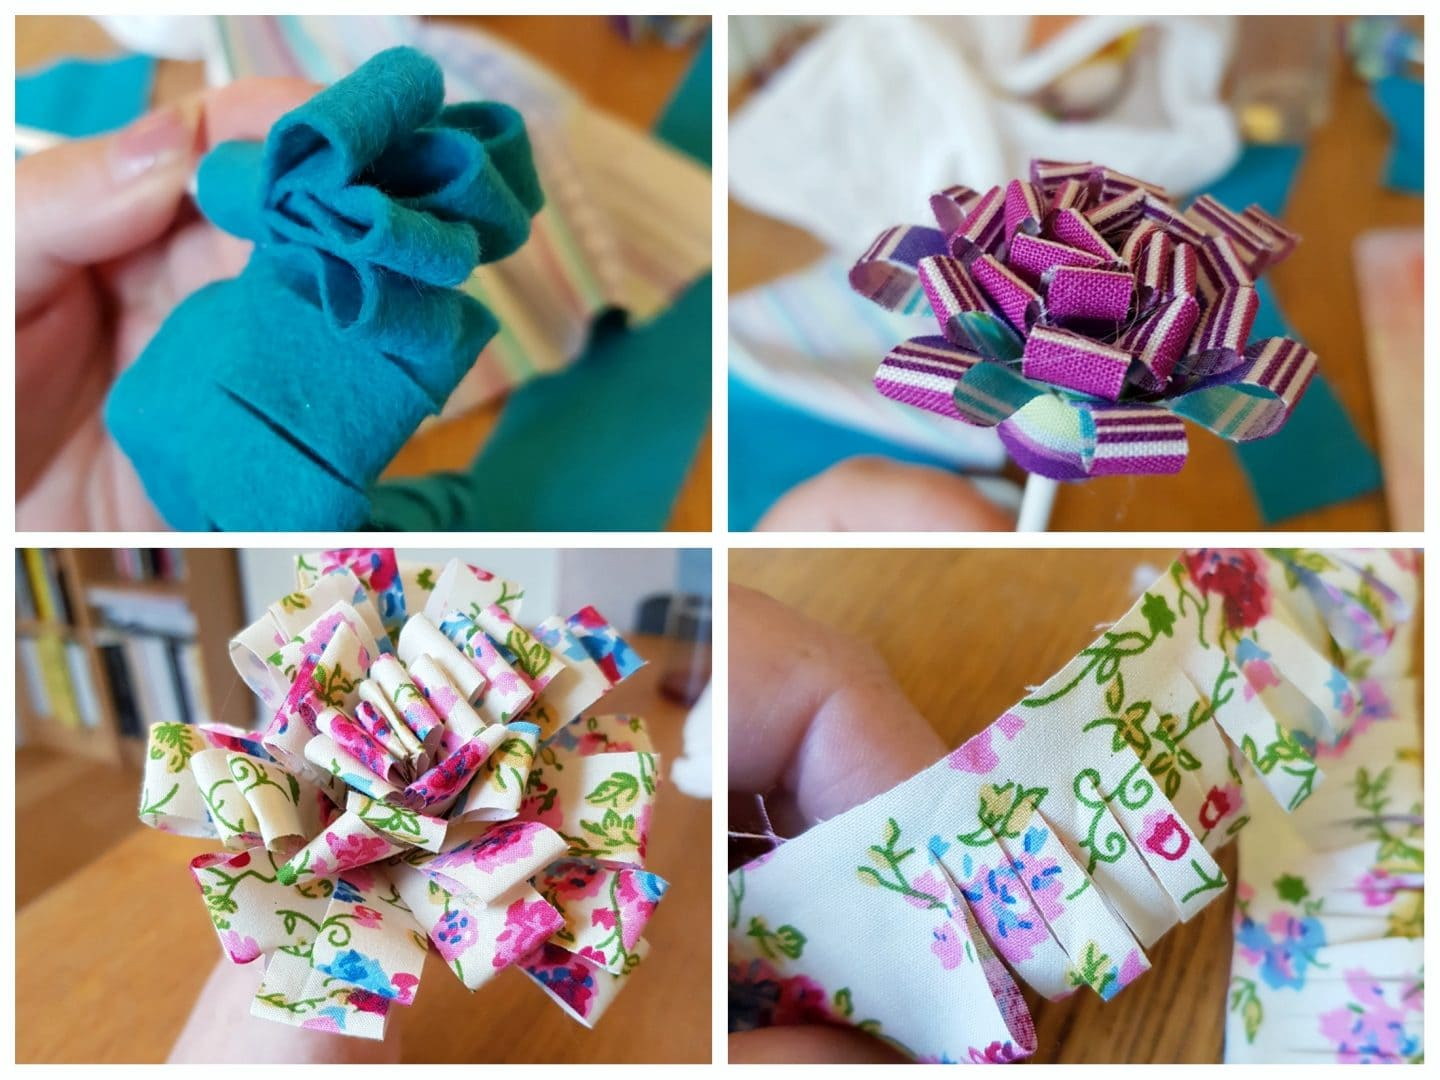 Fabric flowers taking shape